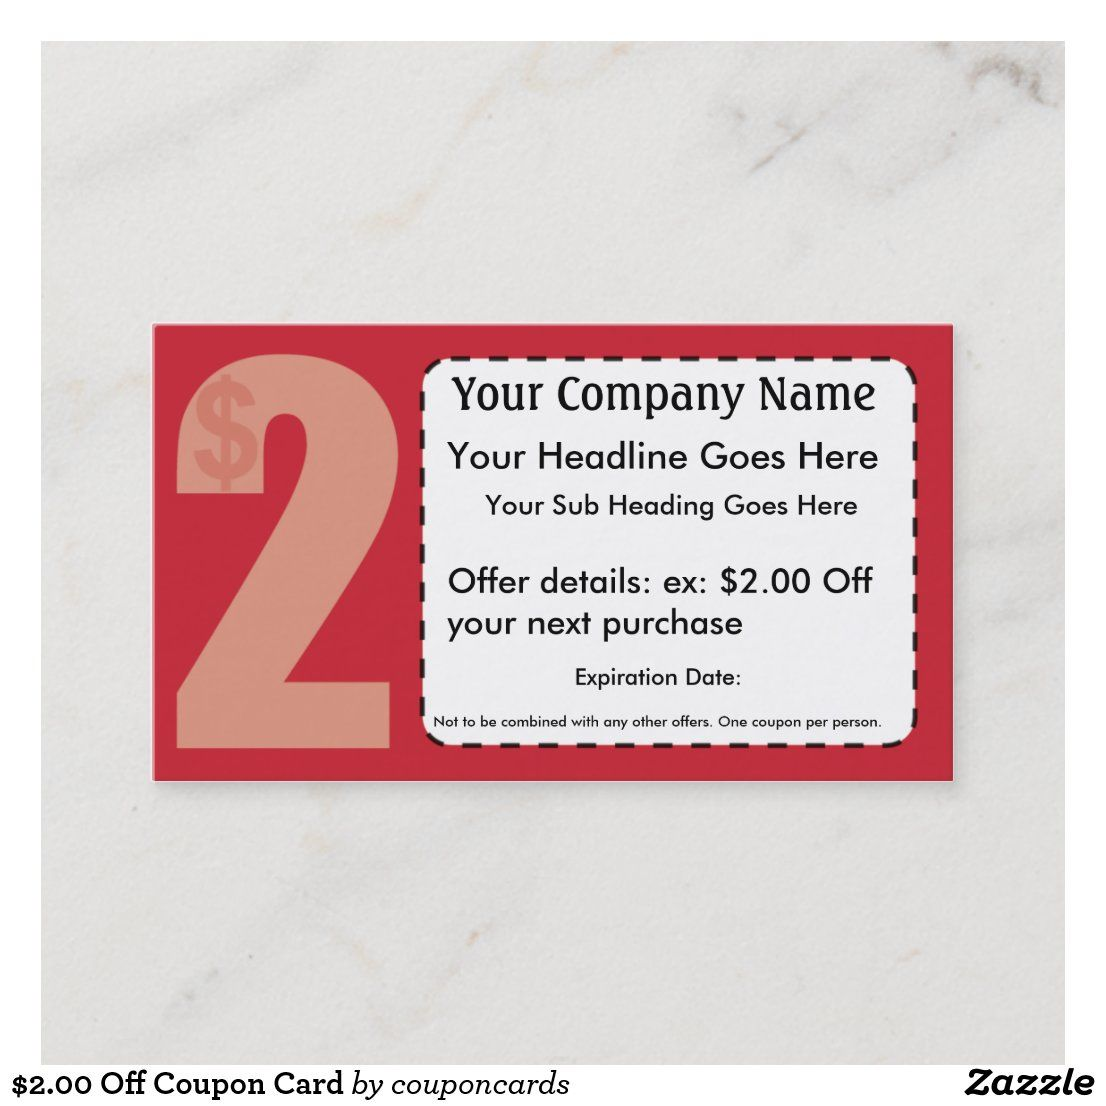 2 00 Off Coupon Card Zazzle Com Business Card Size Standard Business Card Size Discount Card